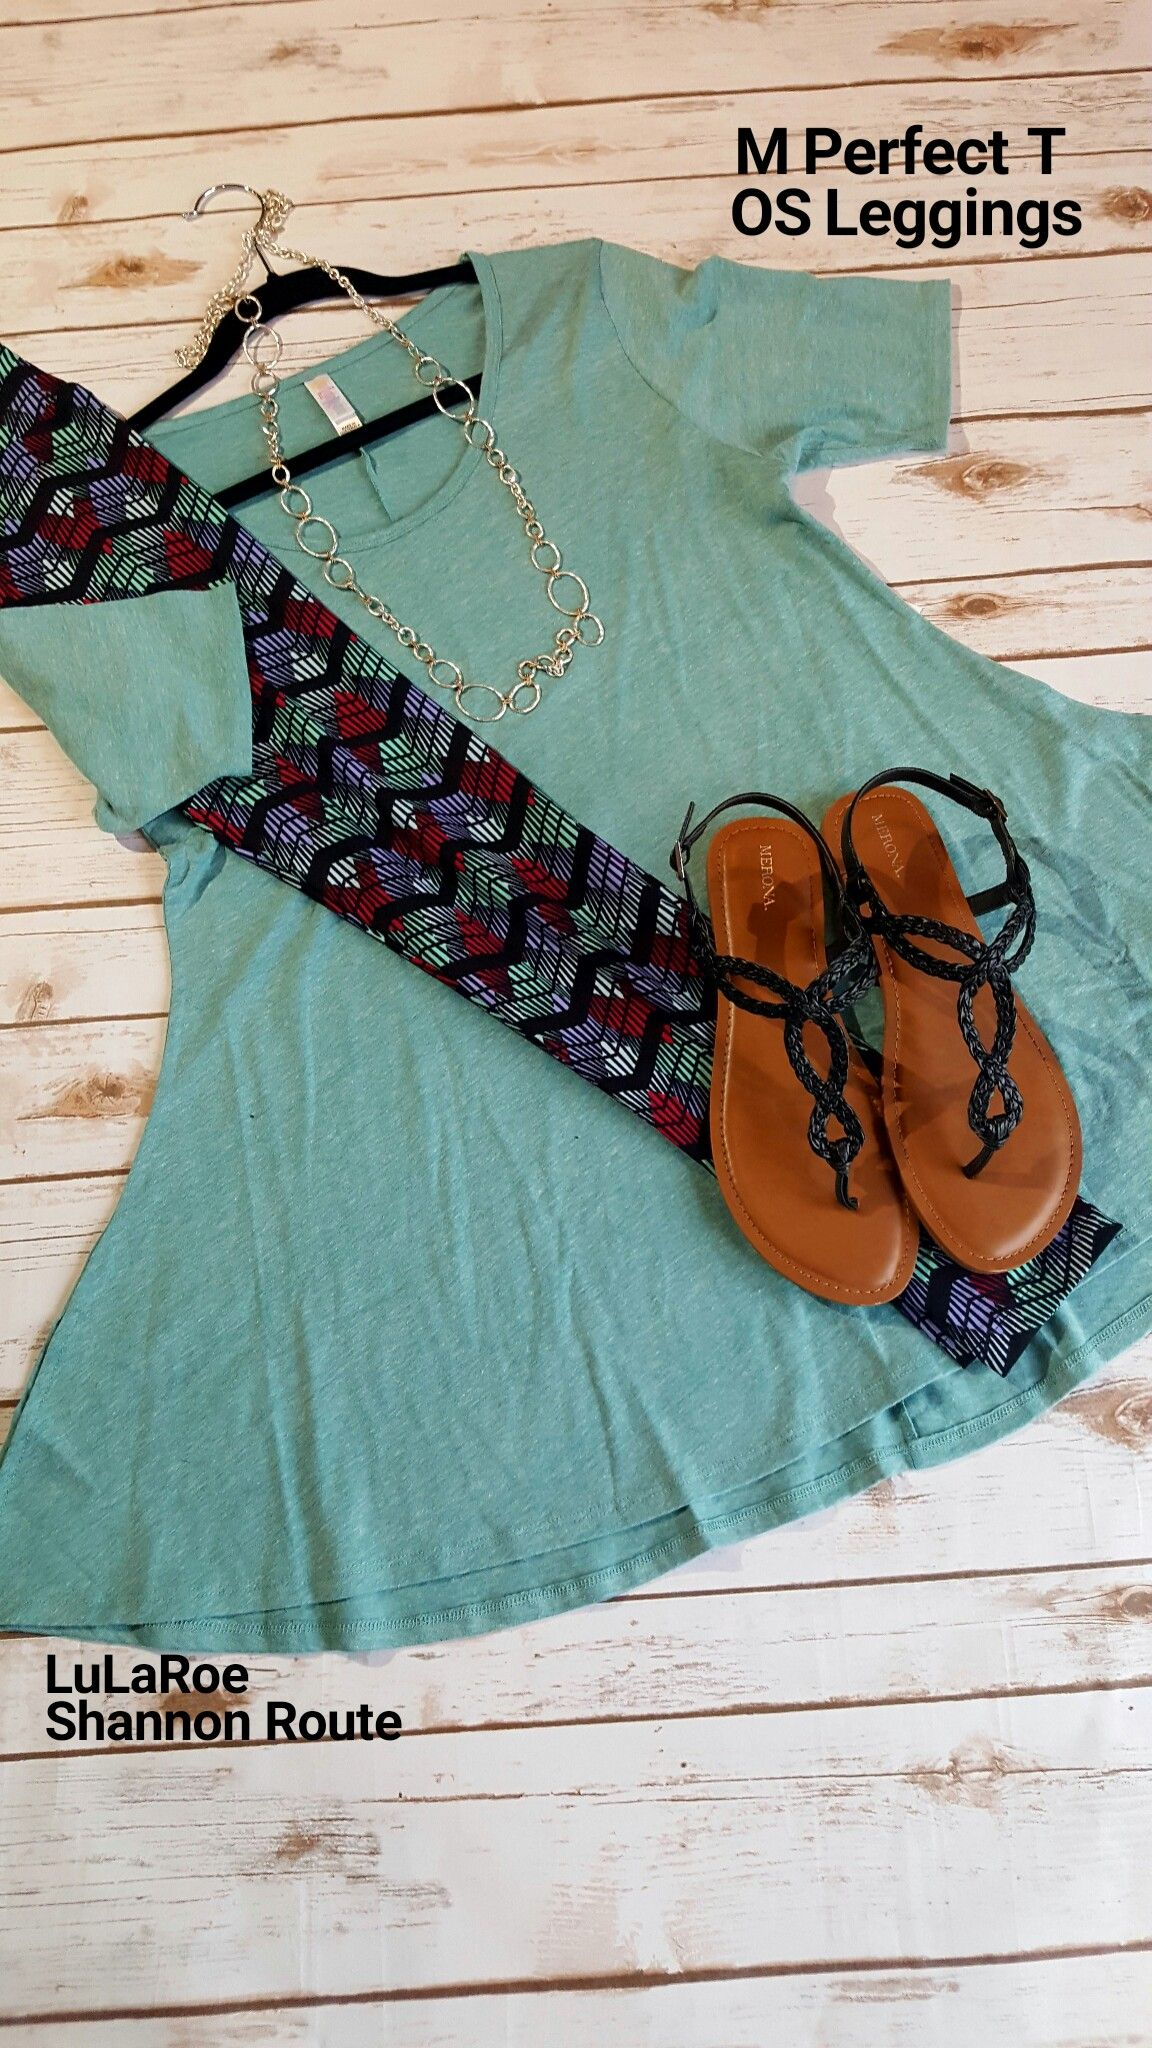 Great outfit for spring! #lularoe #lularoeoutfit #lularoeperfecttee #leggings #lularoeshannonroute #lularoeleggings